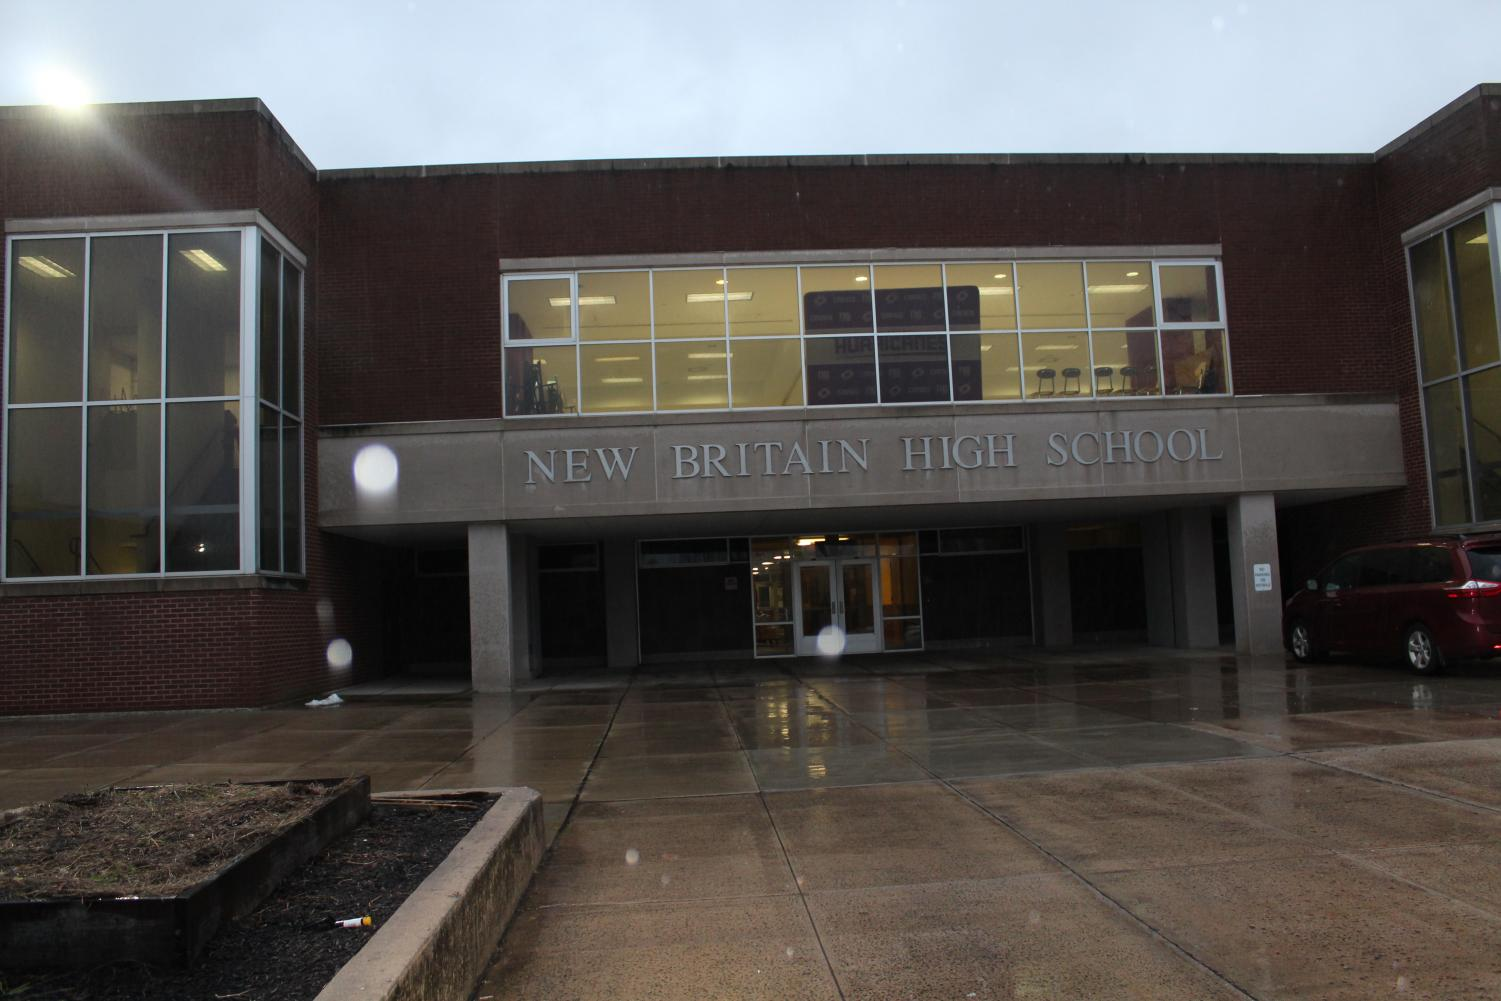 New Britain High School was under lockdown after a suspected shooter was on campus in early November.